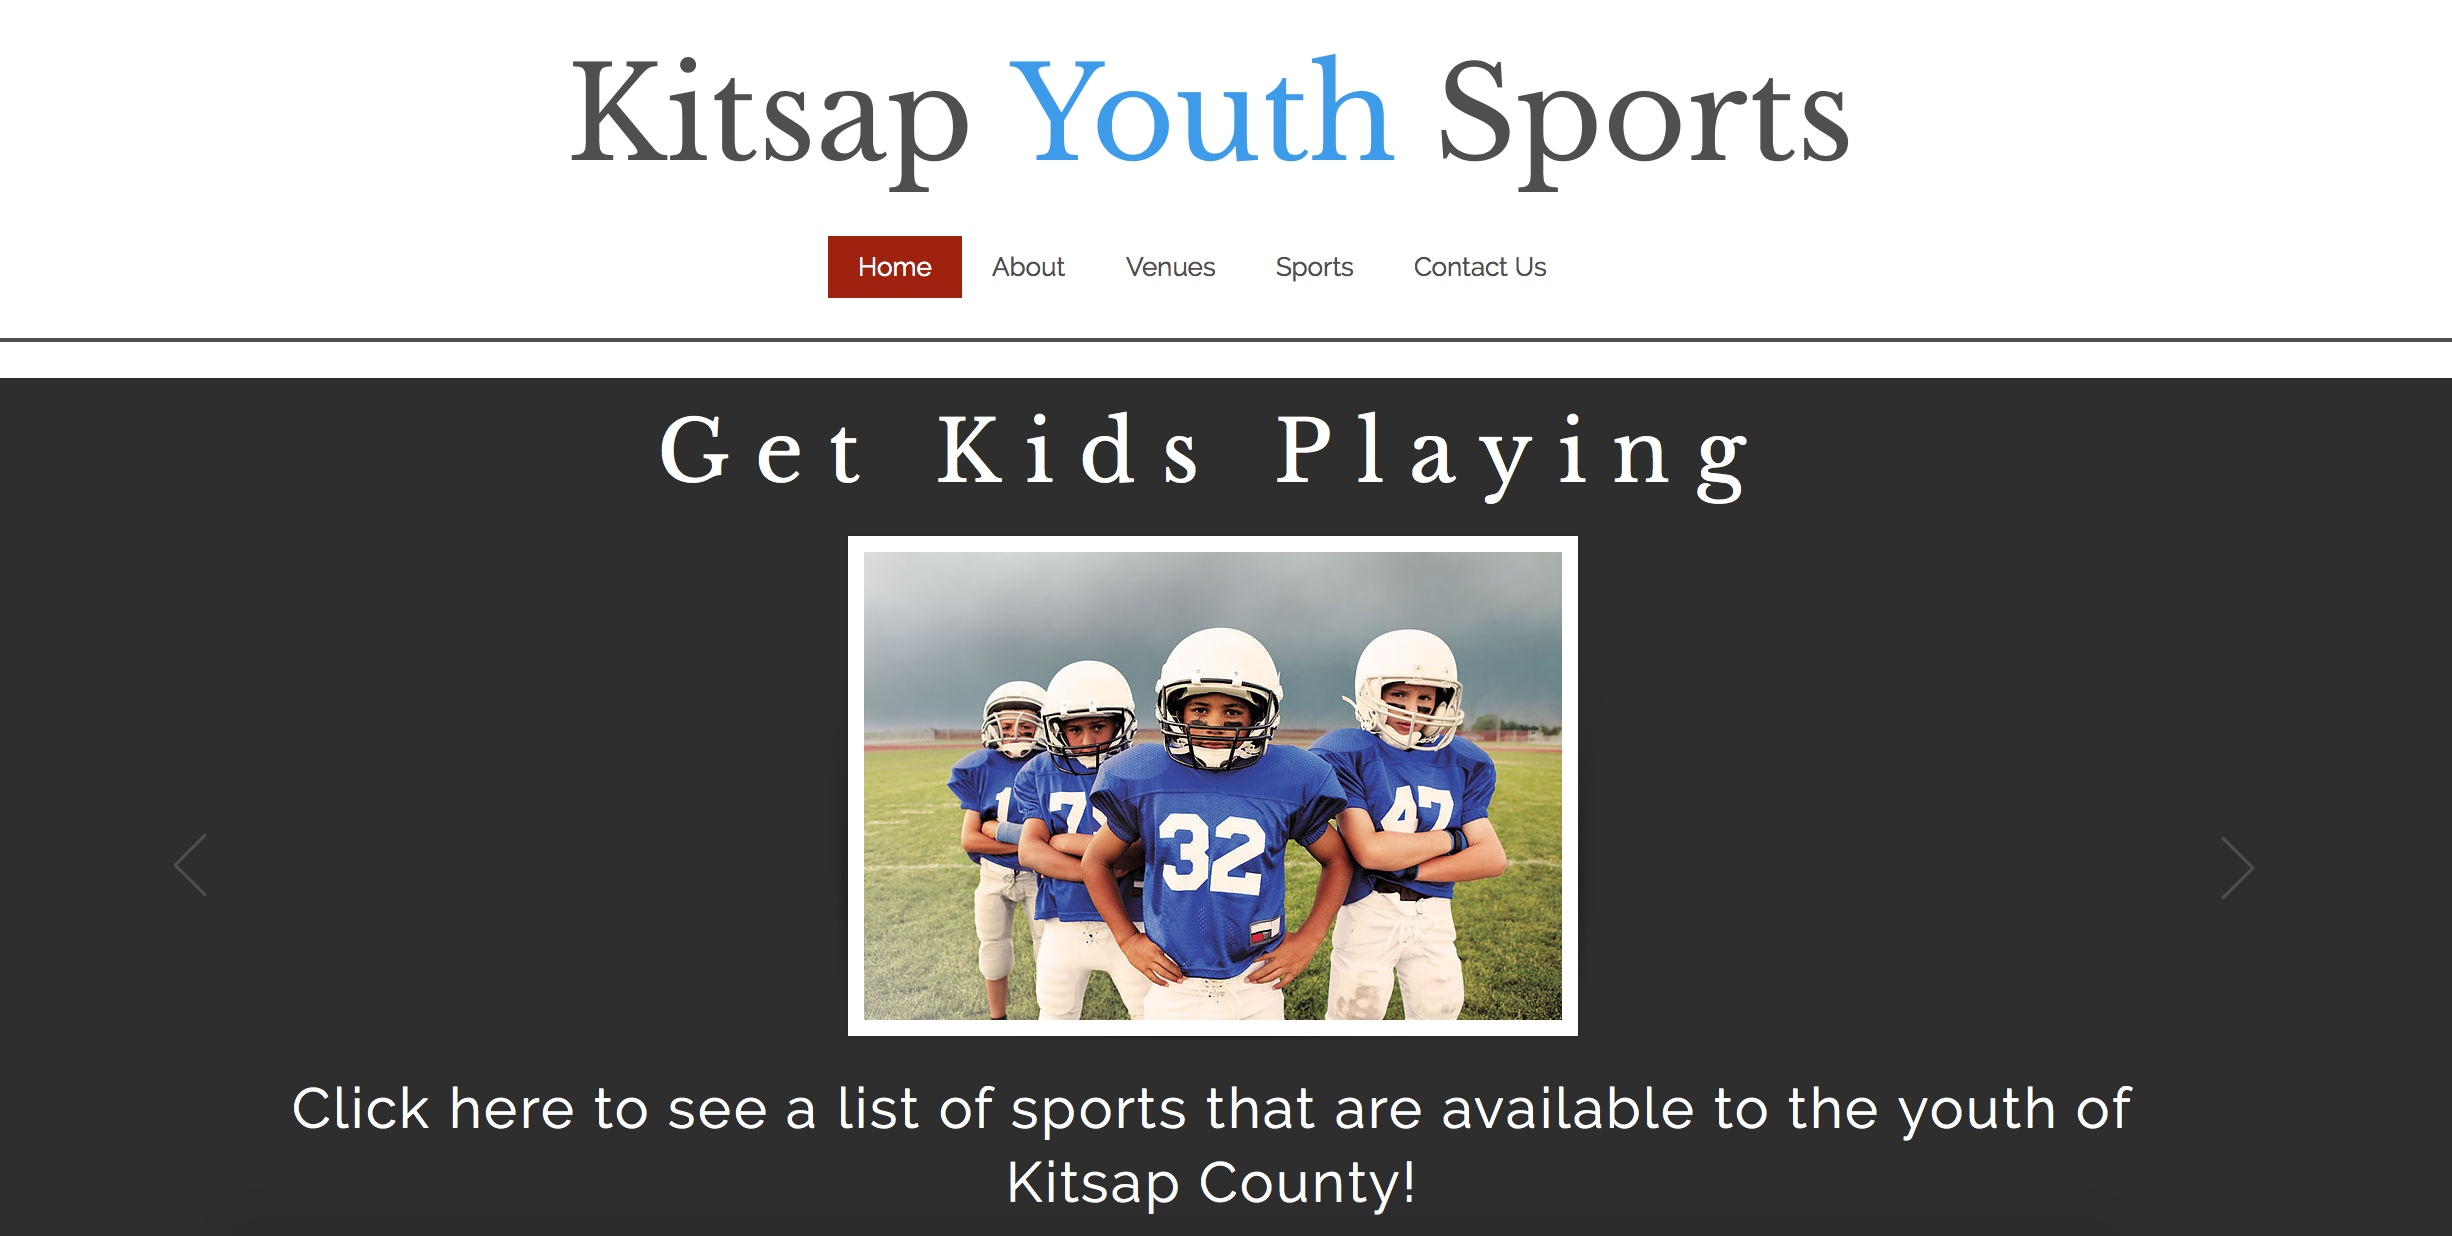 kitsap youth sports